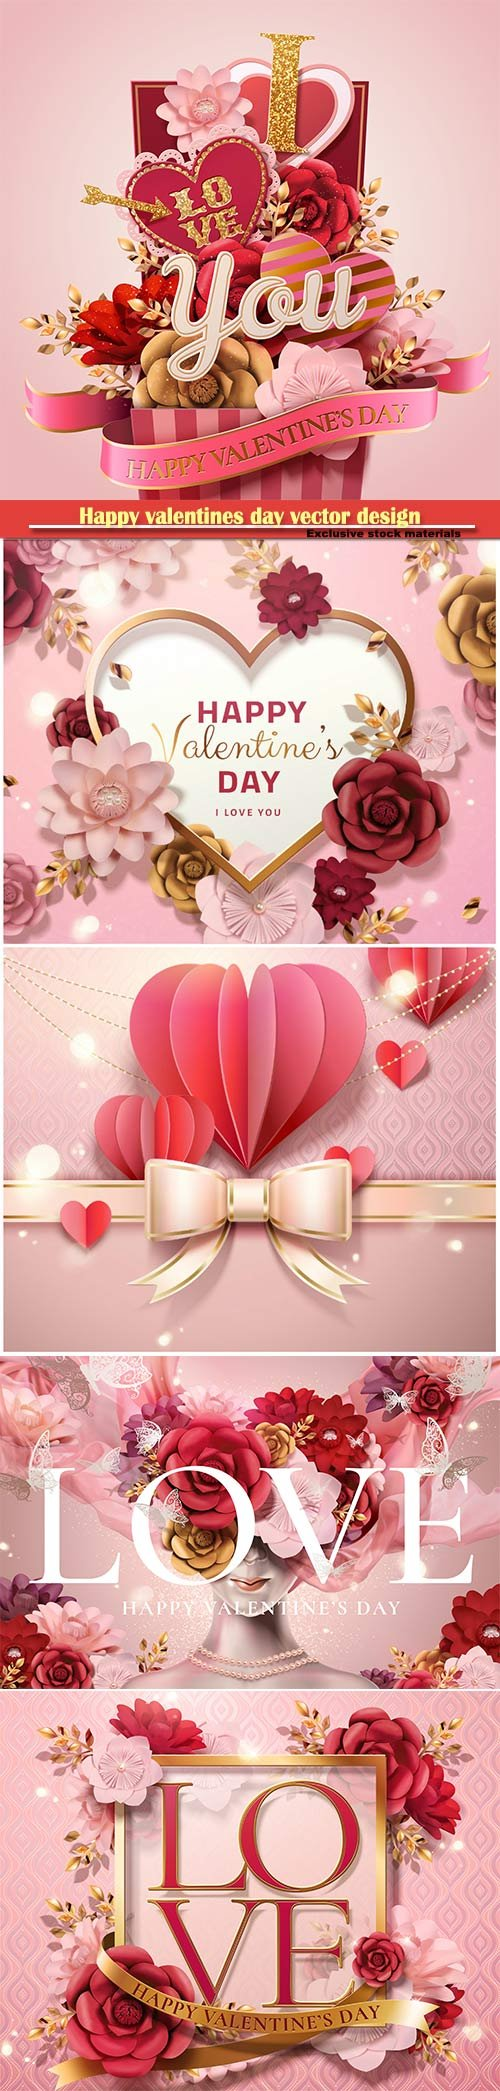 Happy valentines day vector design with heart, balloons, roses in 3d illustration # 4